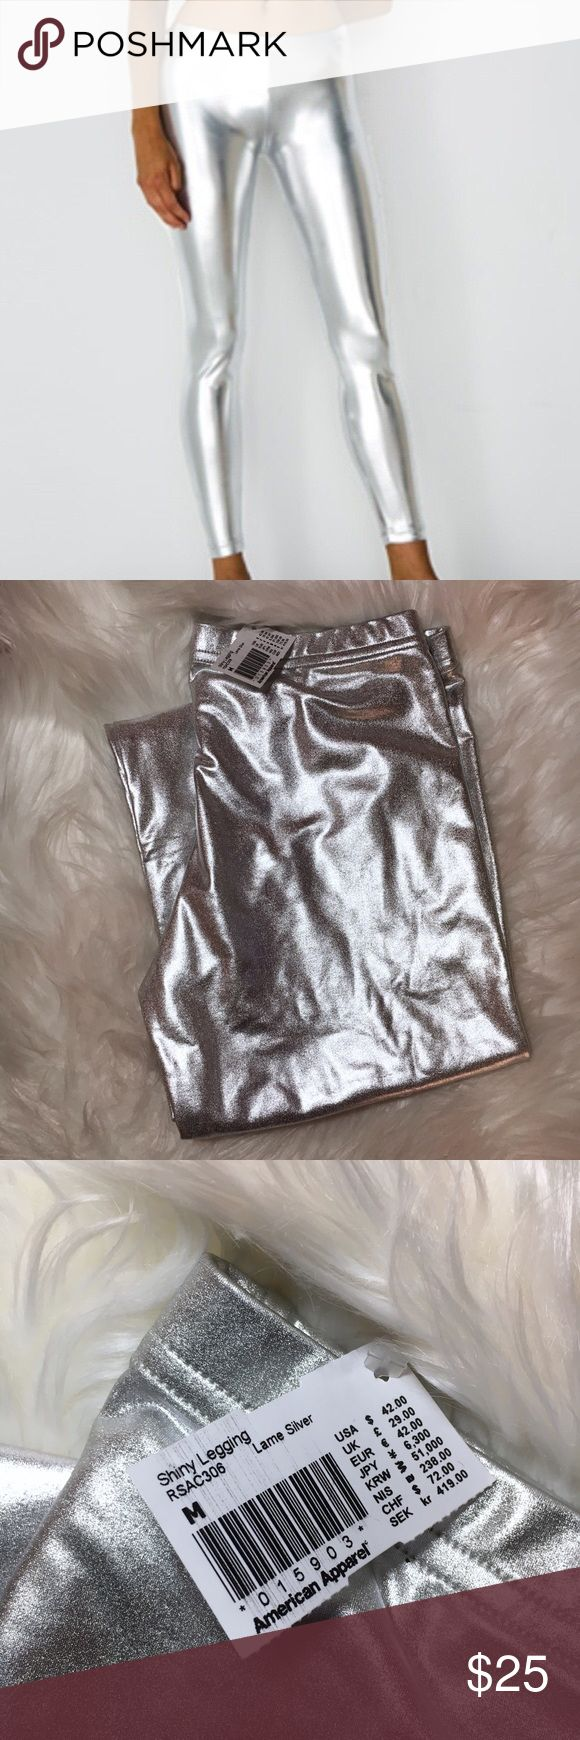 American Apparel Silver Lamé Leggings, NEW Brand new with tags. This material starts to stick to itself when folded and there are tiny marks on the back as pictured. Really hardly visible though! American Apparel Pants Leggings